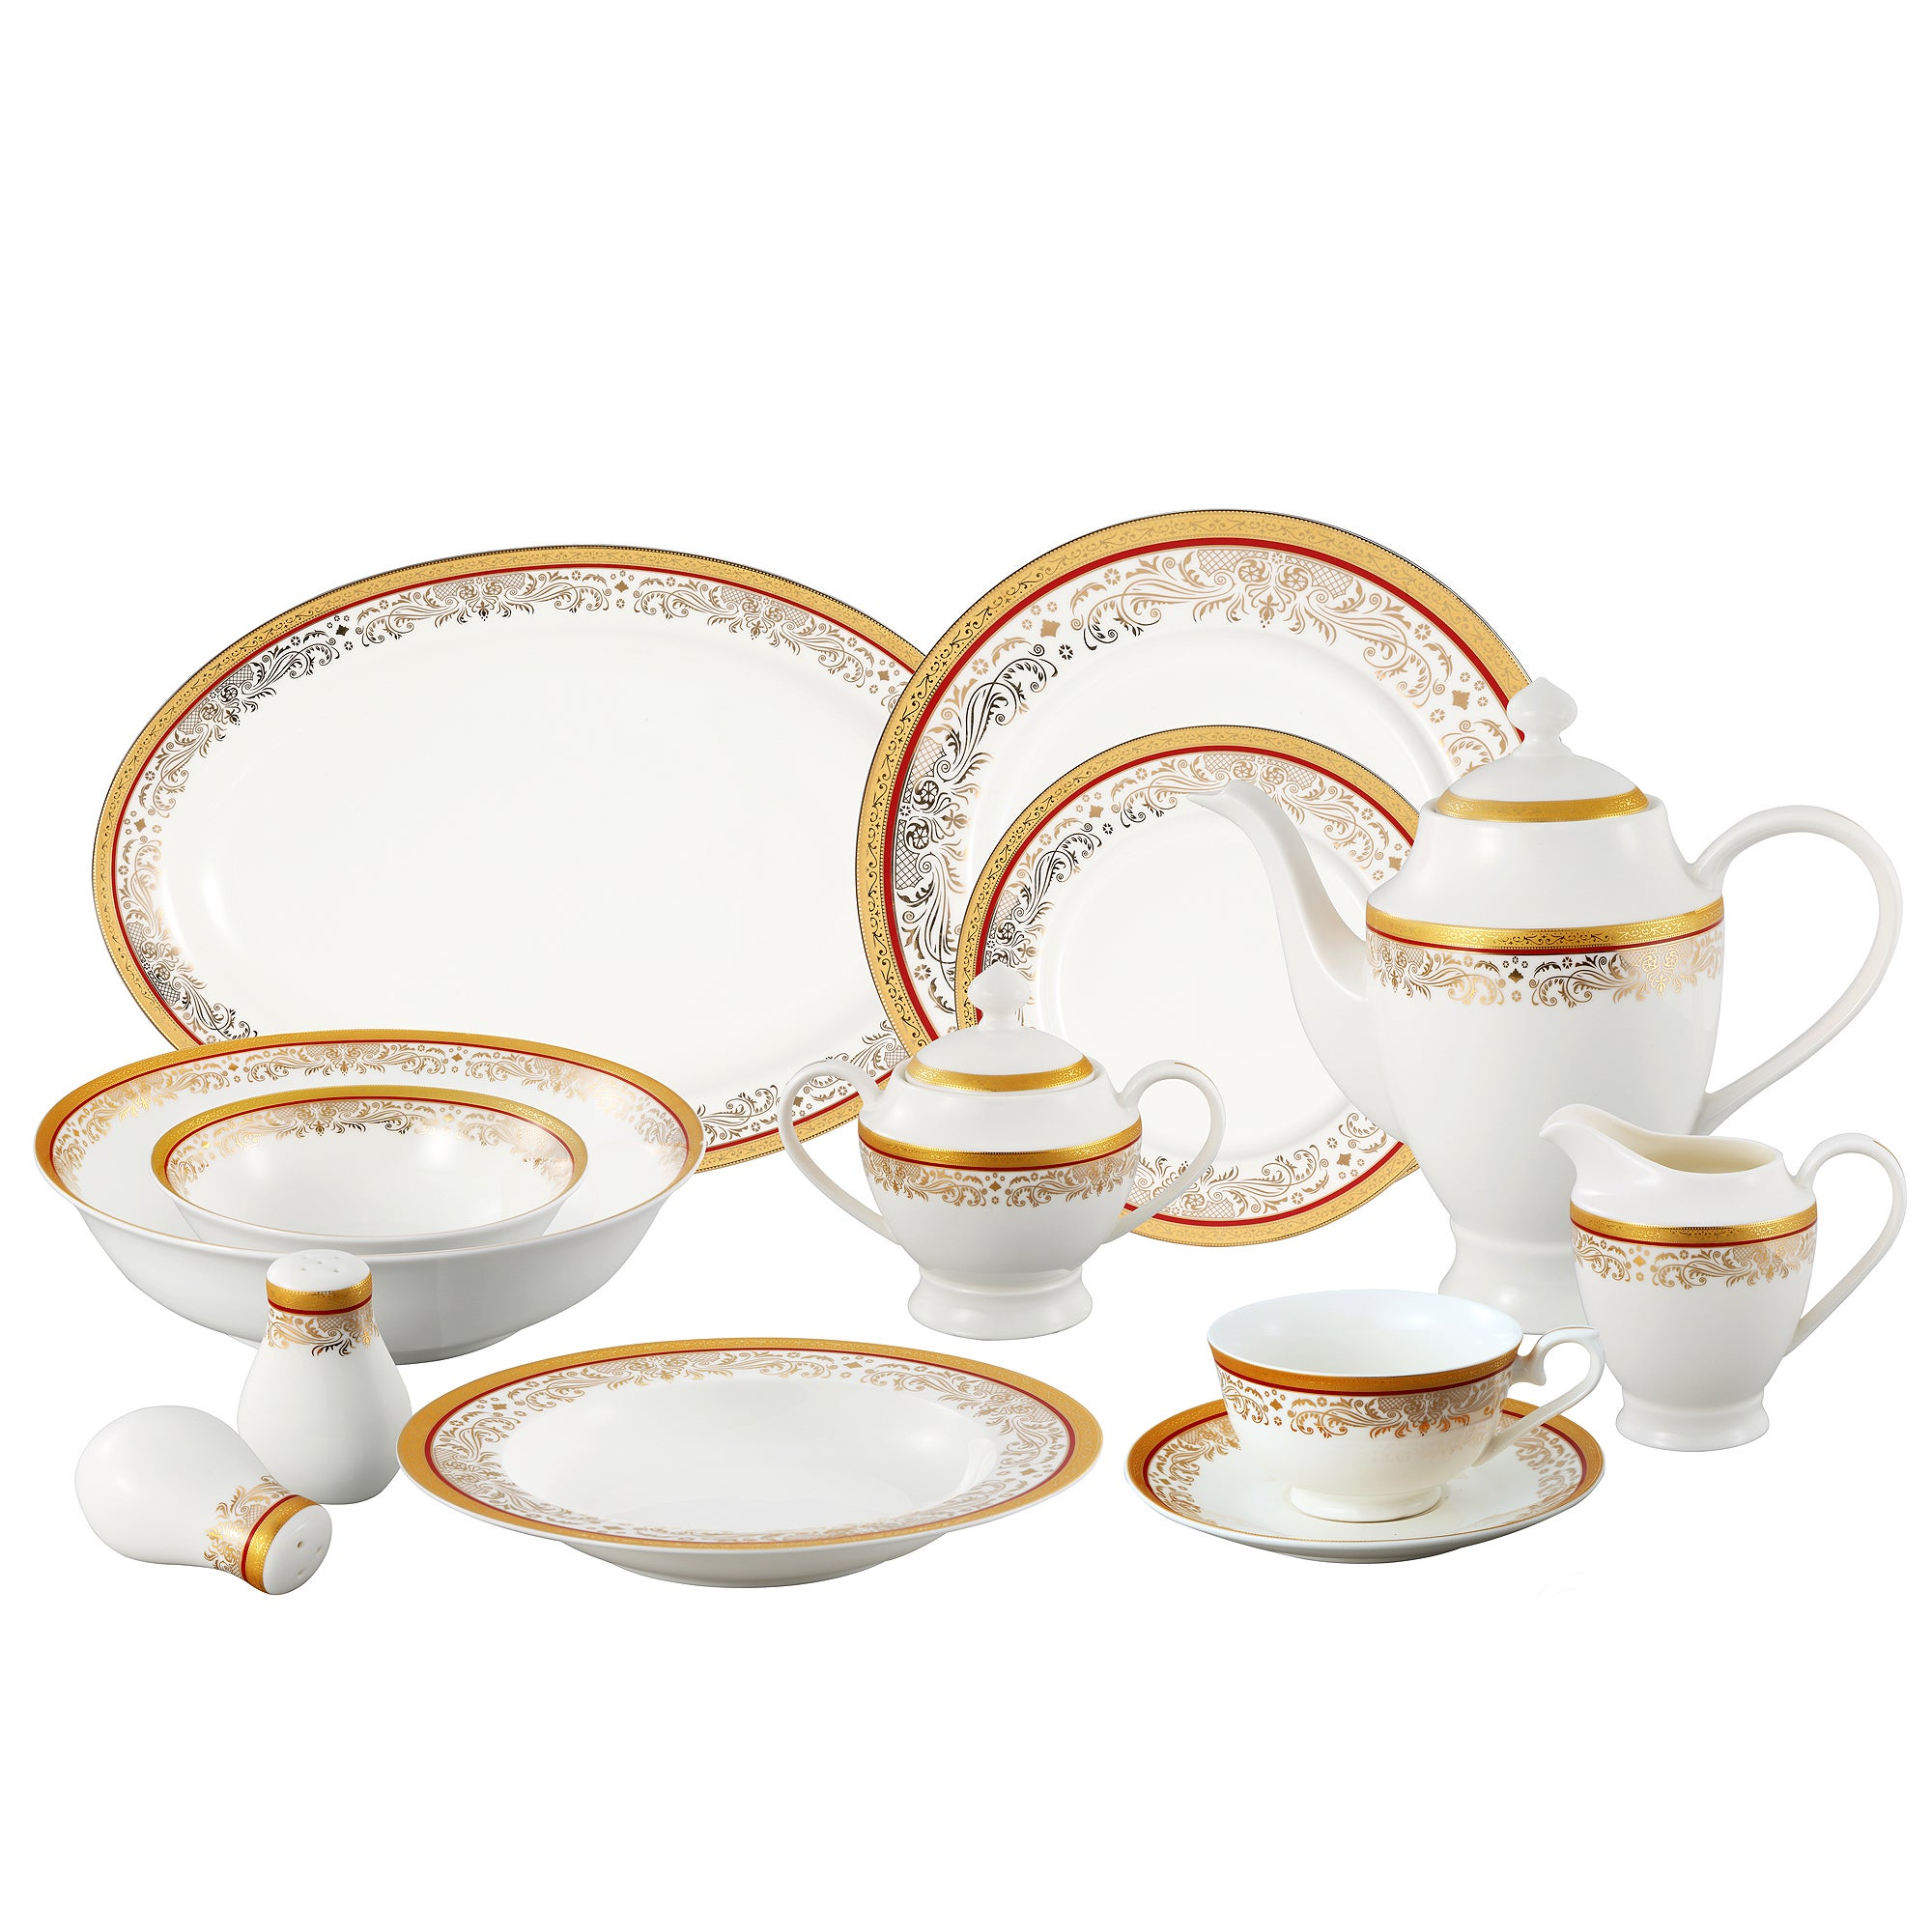 La Luna Collection Bone China 57 Piece Red and 24K Gold Design Dinnerware Set Service for 8 by Lorren Home Trends. - Free Shipping Today - Overstock - ...  sc 1 st  Overstock.com & La Luna Collection Bone China 57 Piece Red and 24K Gold Design ...